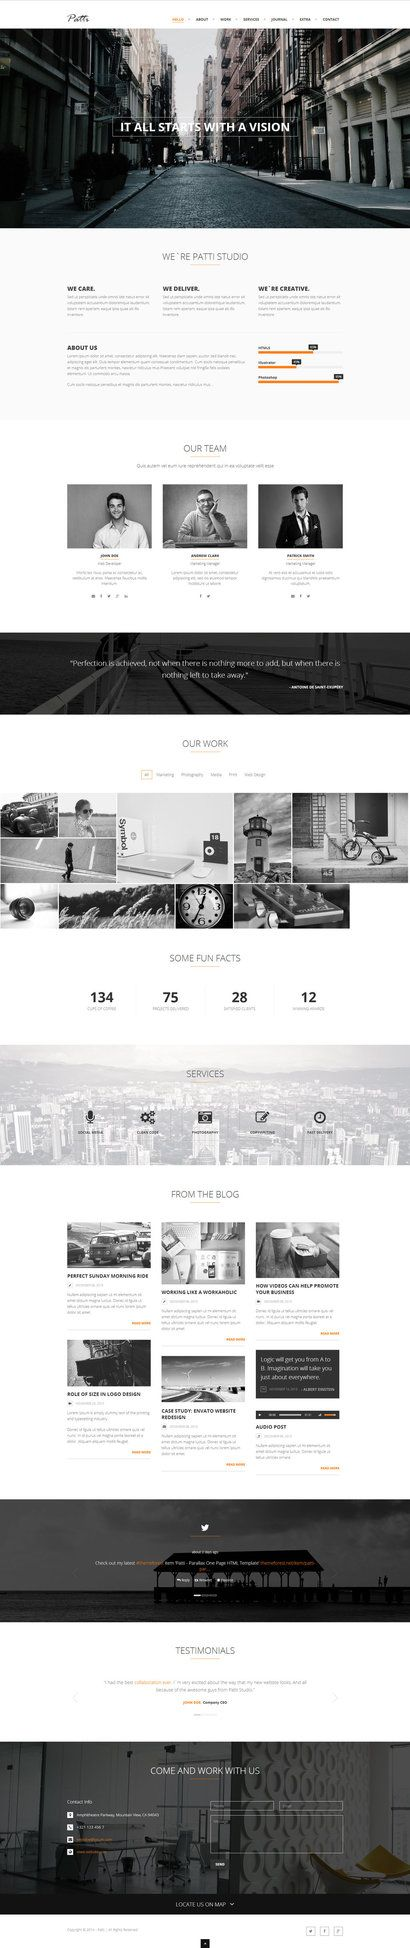 Patti - Parallax One Page HTML Template by DarkStaLkeRR on deviantART